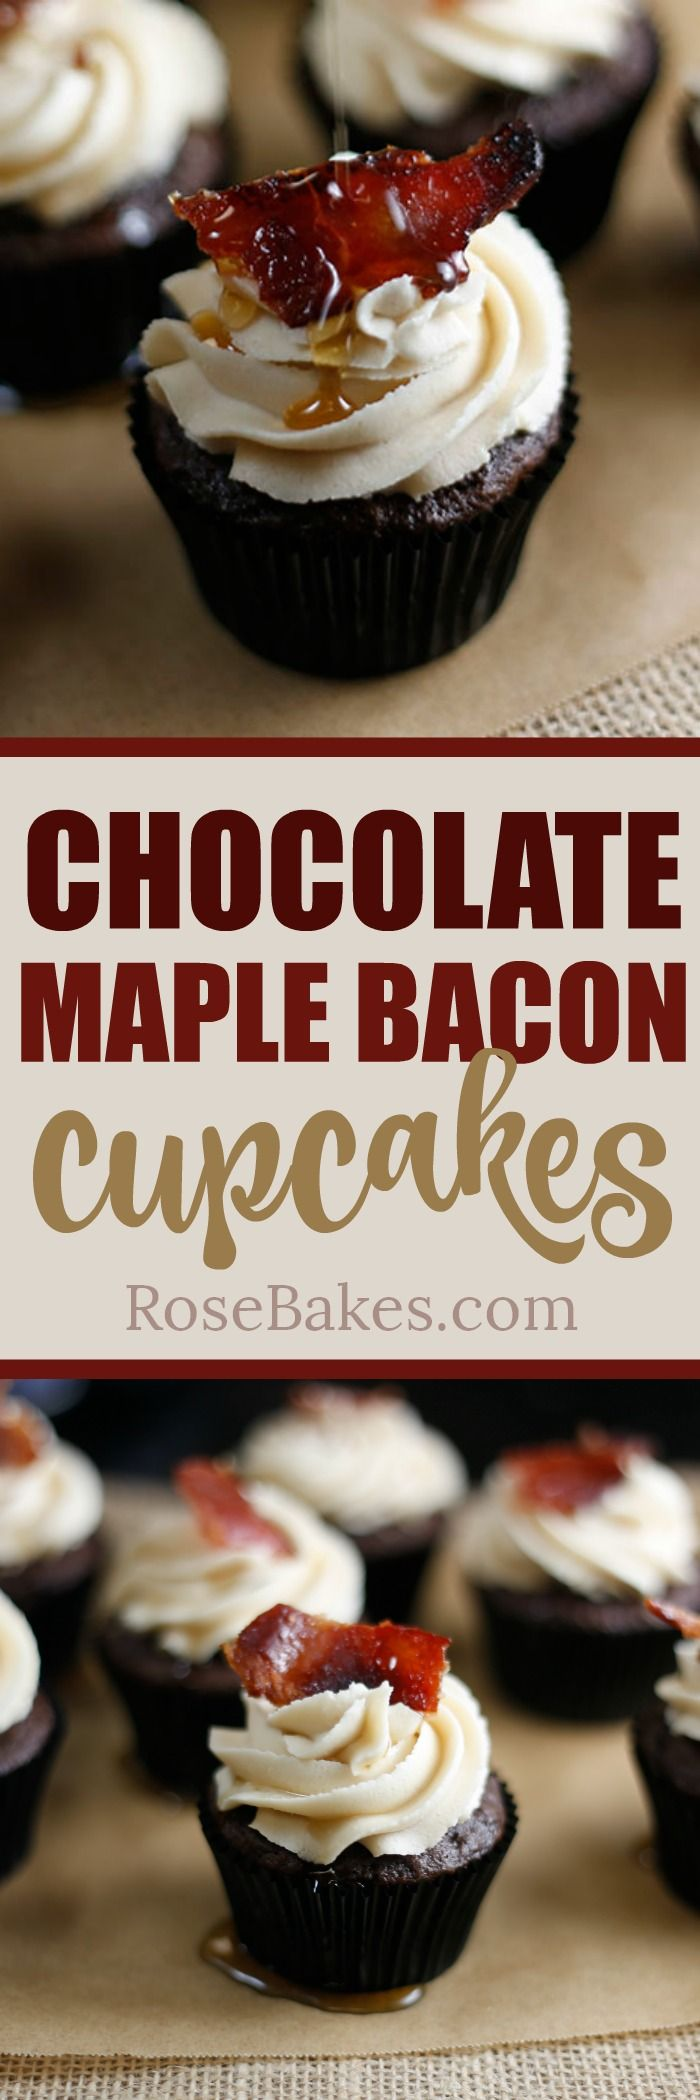 Chocolate Maple Bacon Cupcakes. Rich chocolate cupcakestopped with Maple Brown Sugar Buttercream , then a piece of candied bacon and drizzled with pure maple syrup. The perfect combo of salty and sweet - creamy and crunchy.